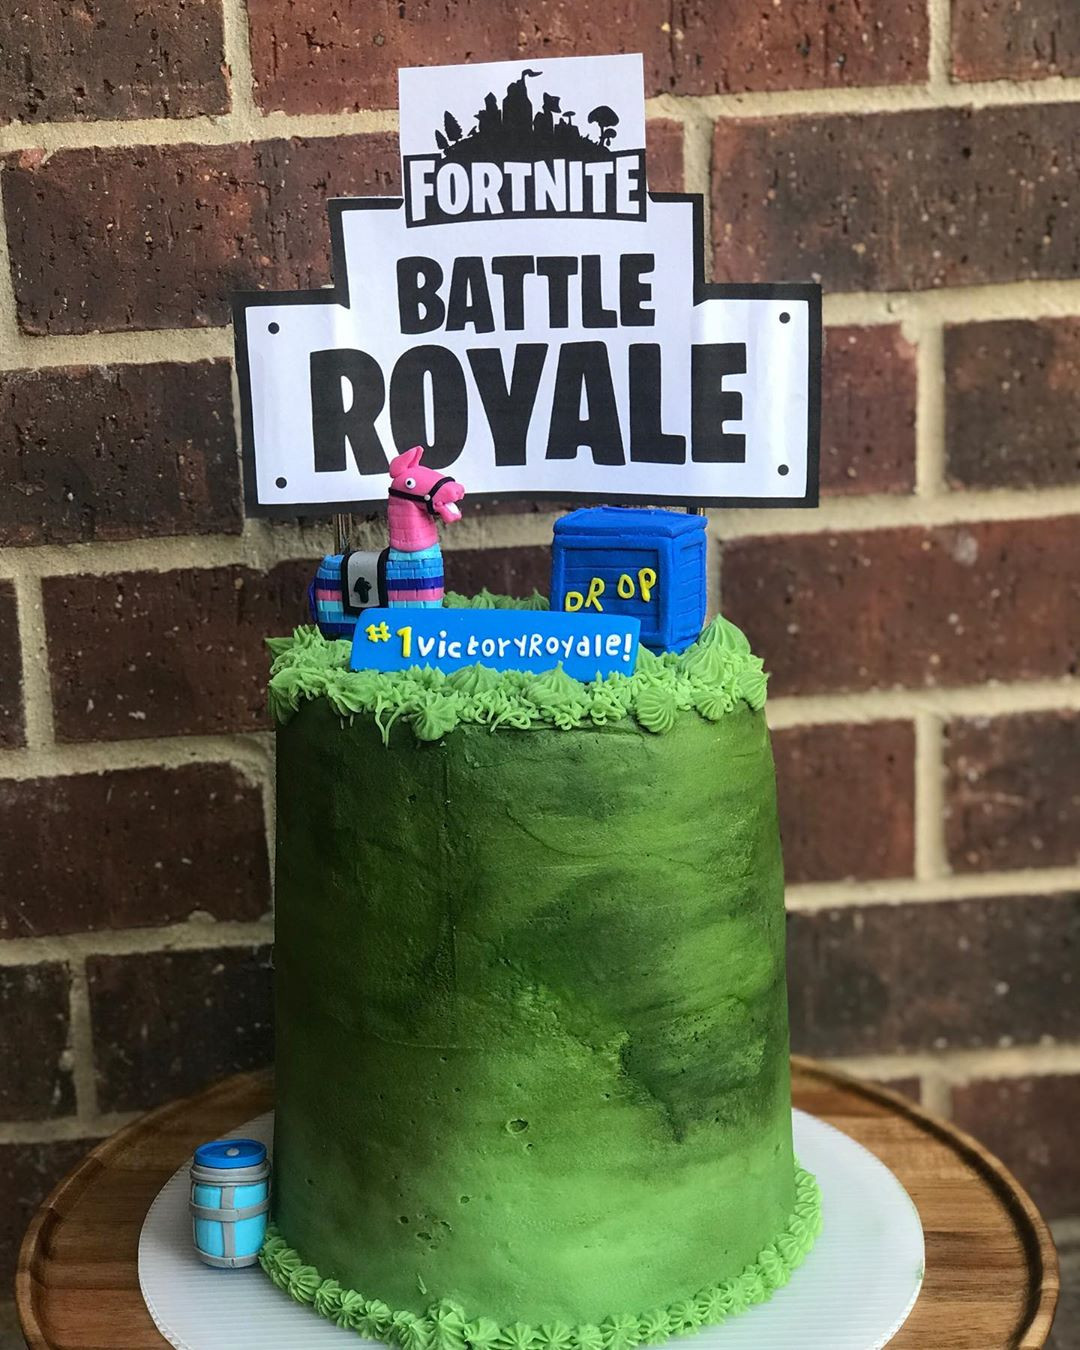 50 Fortnite Cake Ideas for Birthday Party in 2020